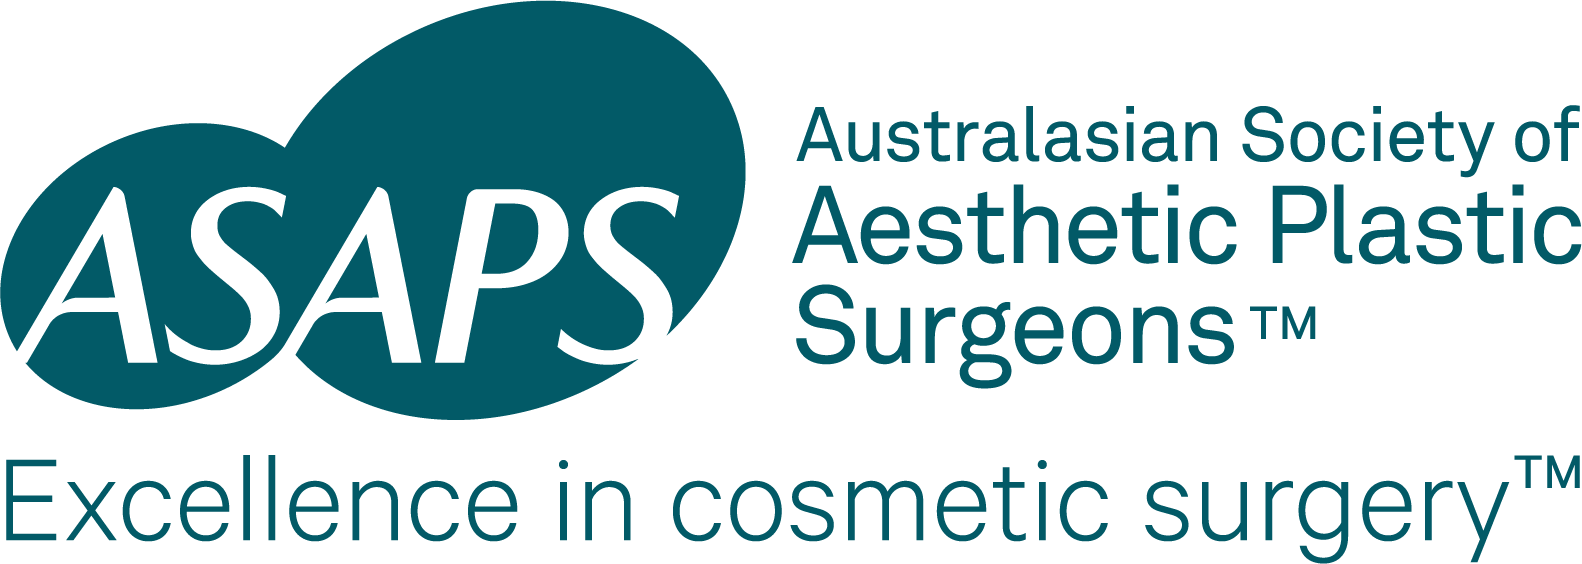 ASAPS-Logo-Excellence-in-cosmetic-surgery_Primary_RGB2